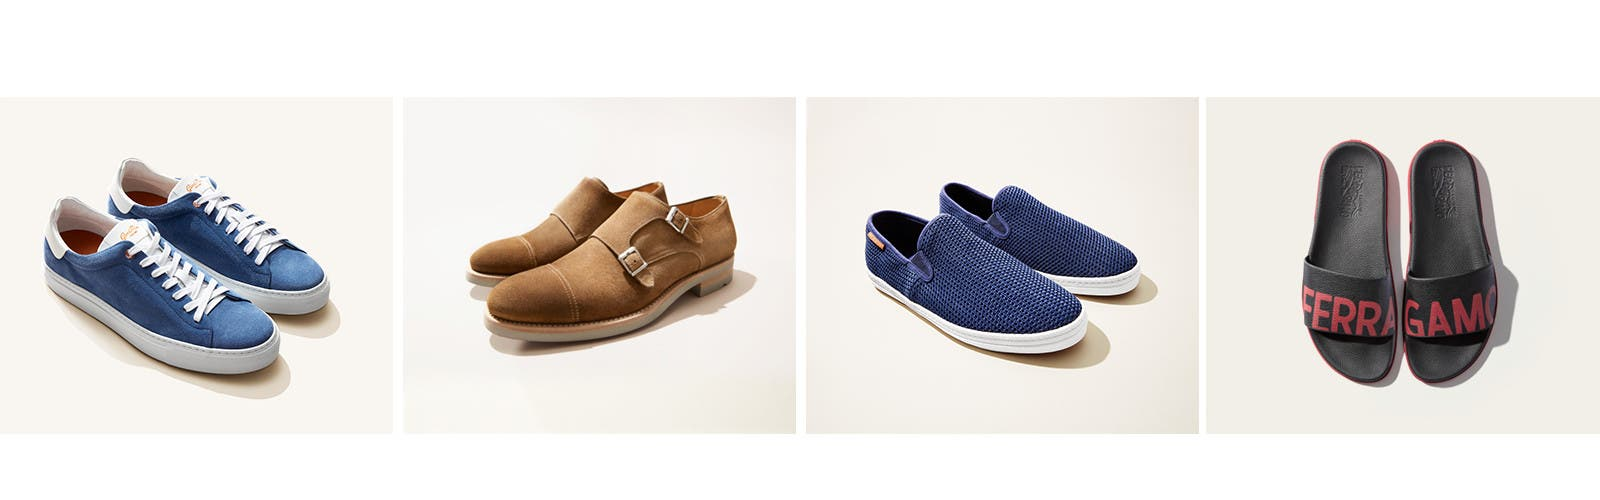 0542b36c40b New men s shoes for spring.